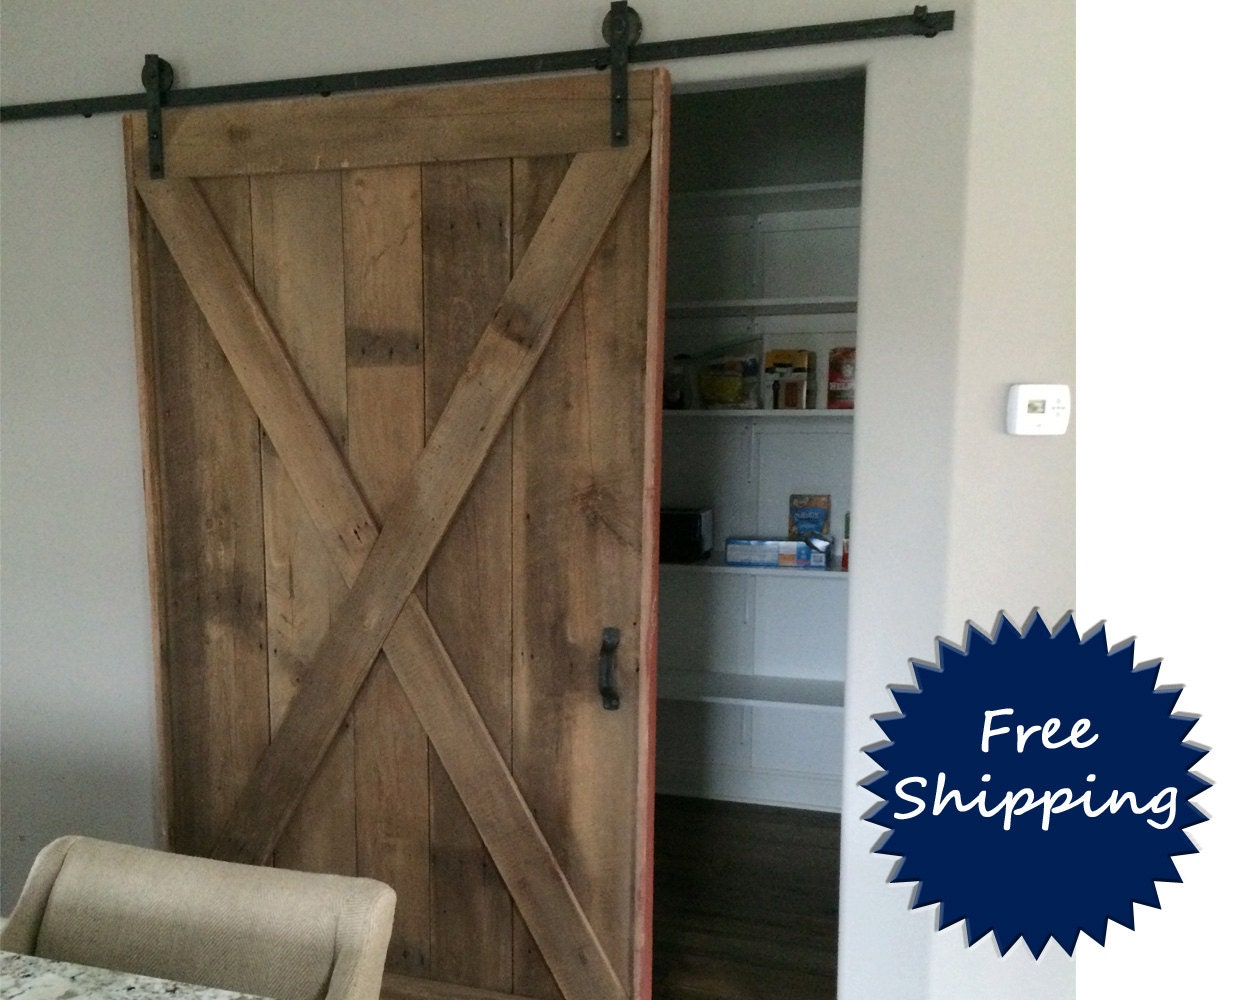 x brace barn door room divider made to order from reclaimed